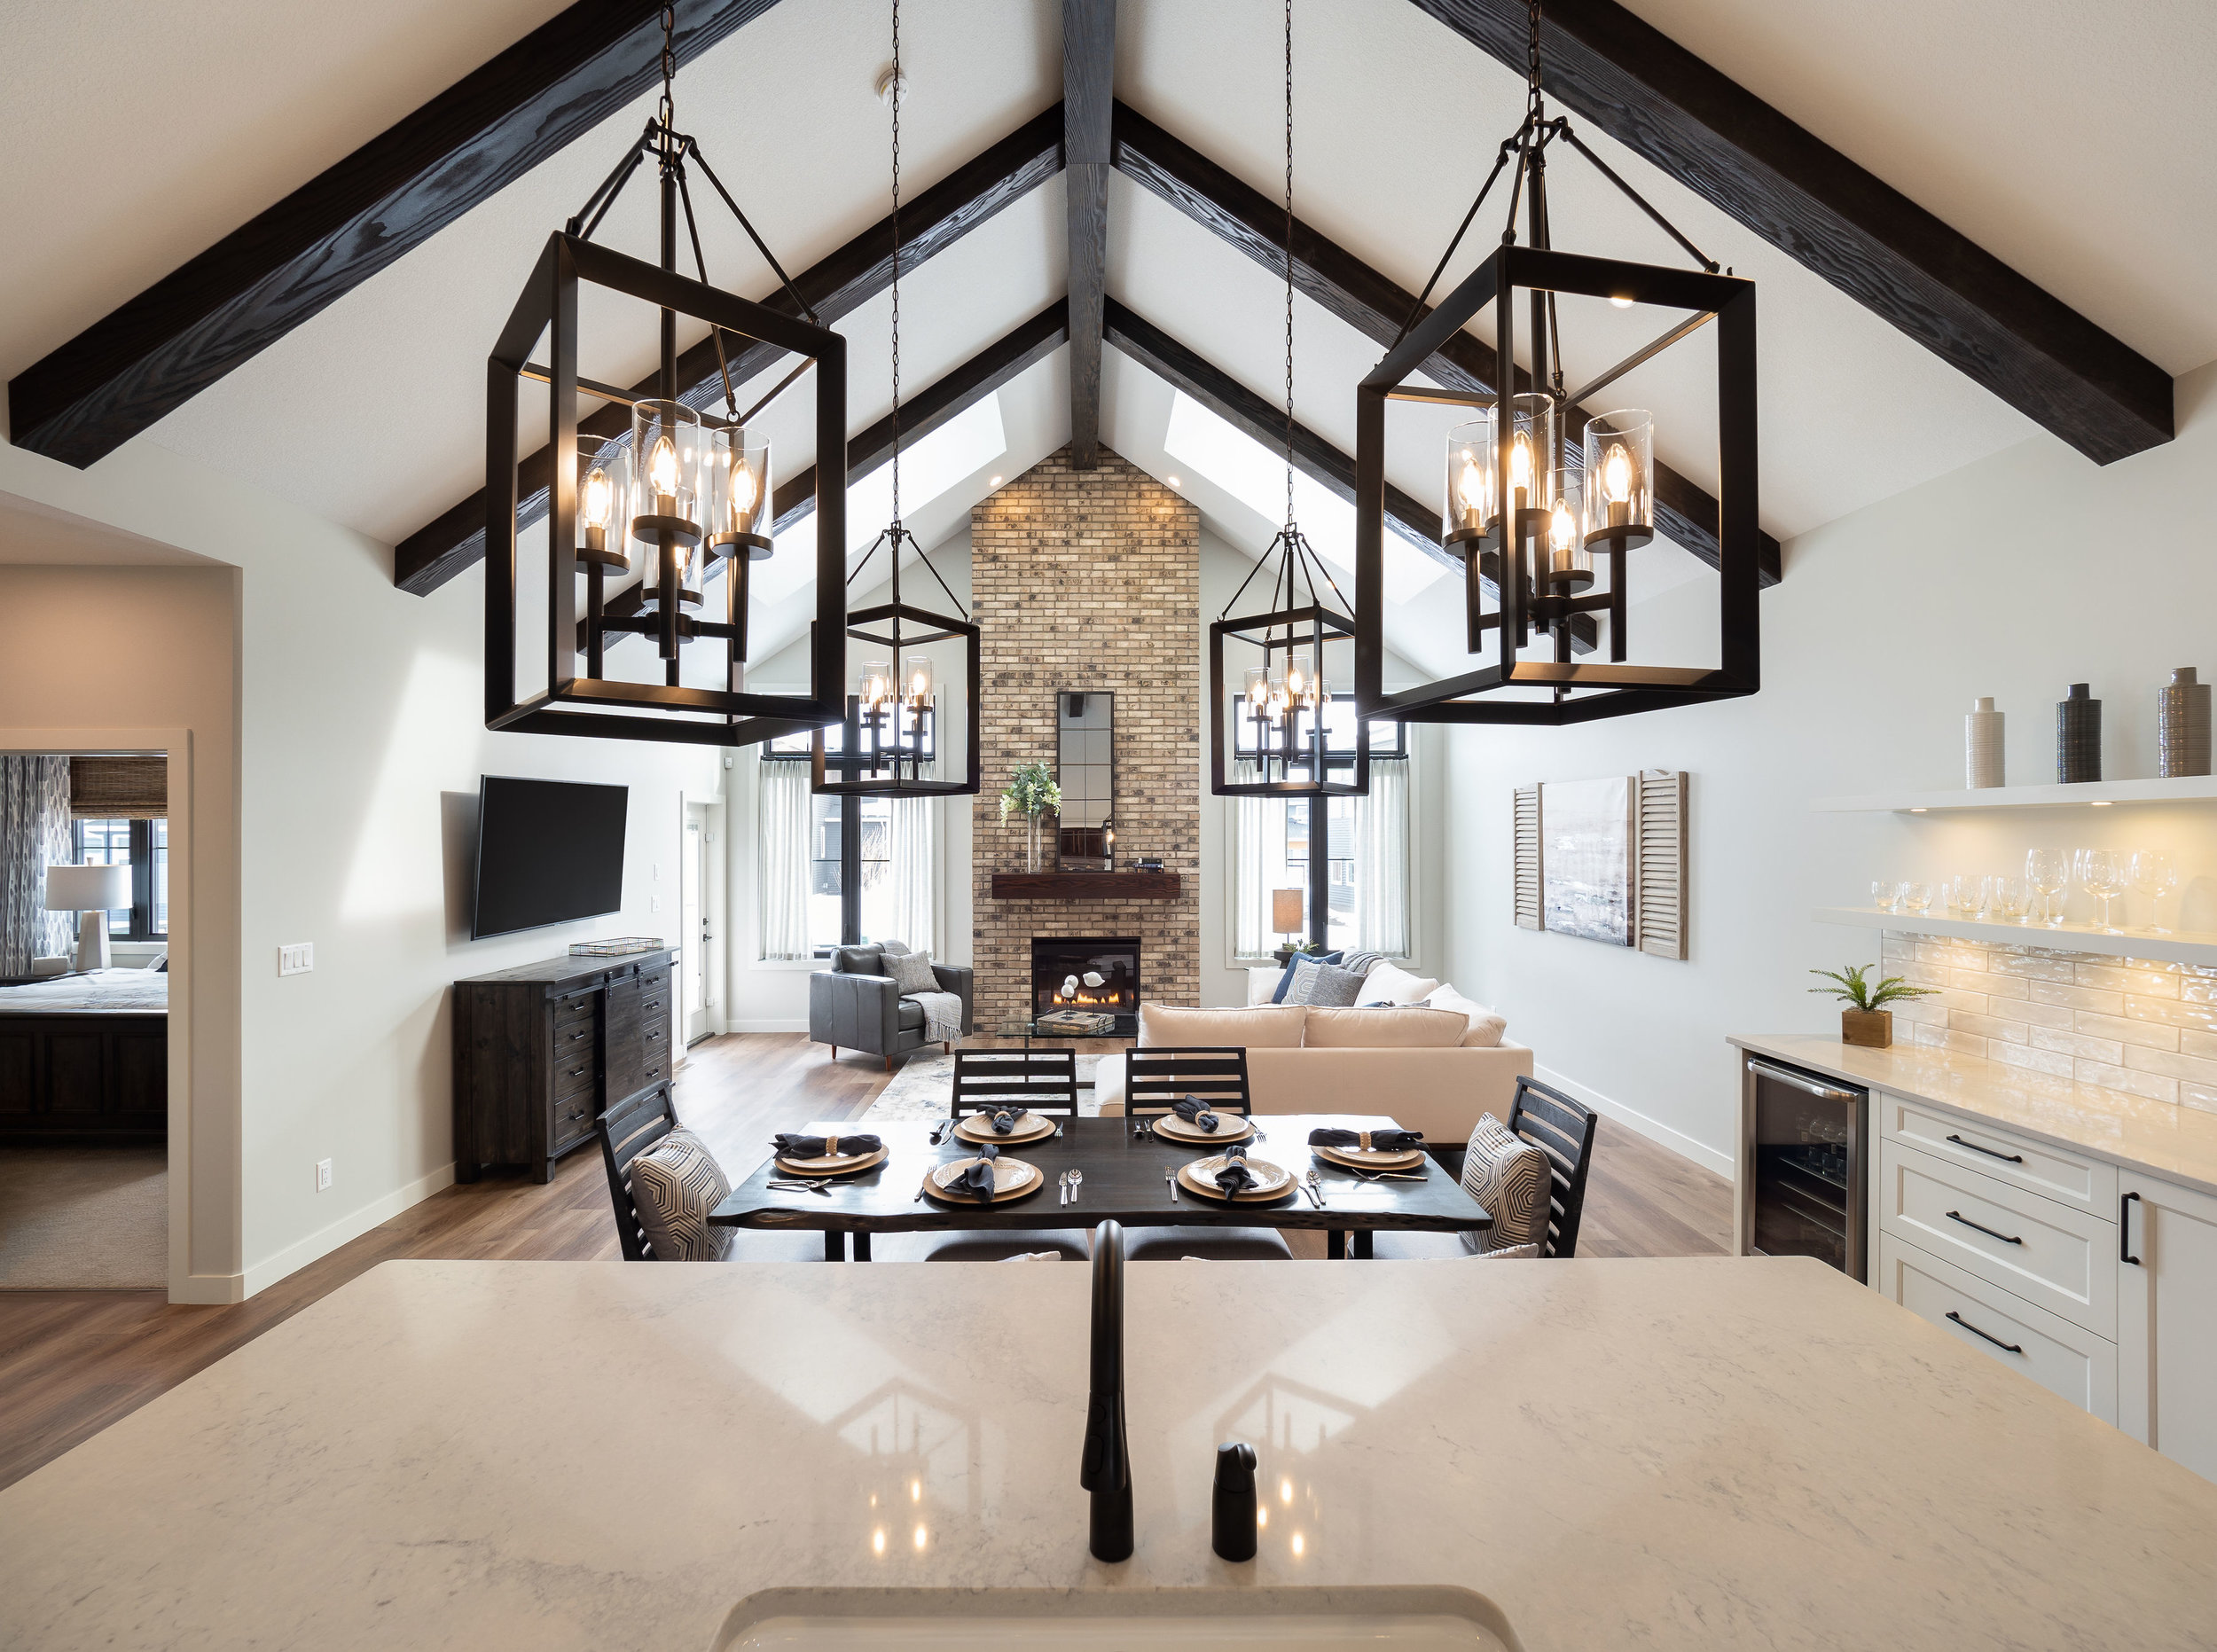 A floor to ceiling fireplace is the focus in the living room with large lantern lights in the kitchen balancing the room.